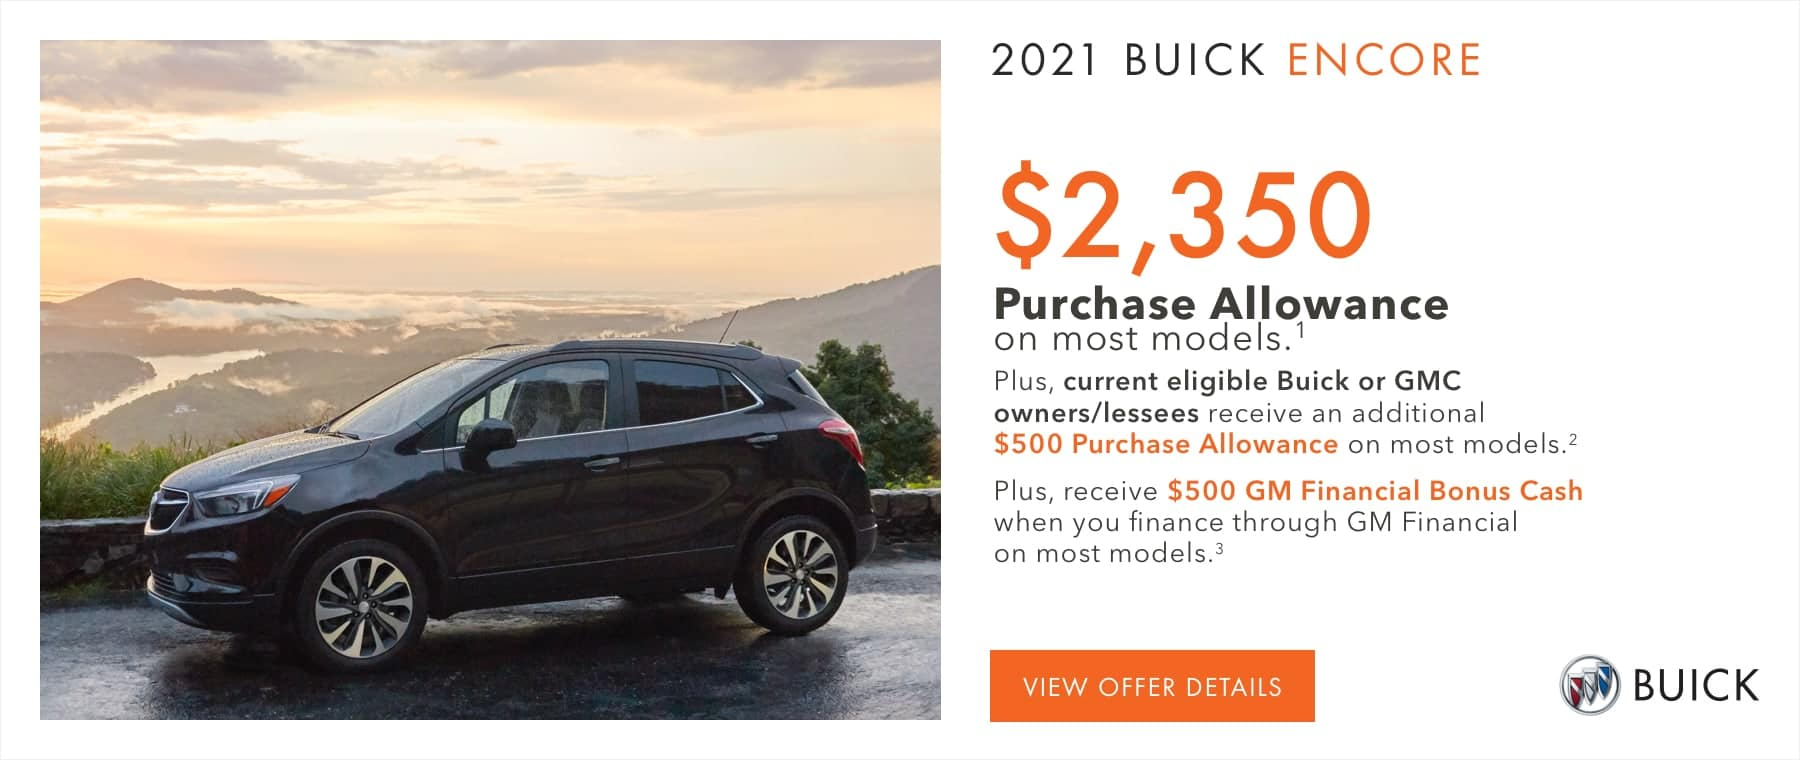 $2,350 Purchase Allowance on most models.1 Plus, current eligible Buick or GMC owners/lessees receive an additional $500 Purchase Allowance on most models.2 Plus, receive $500 GM Financial Bonus Cash when you finance through GM Financial on most models.3